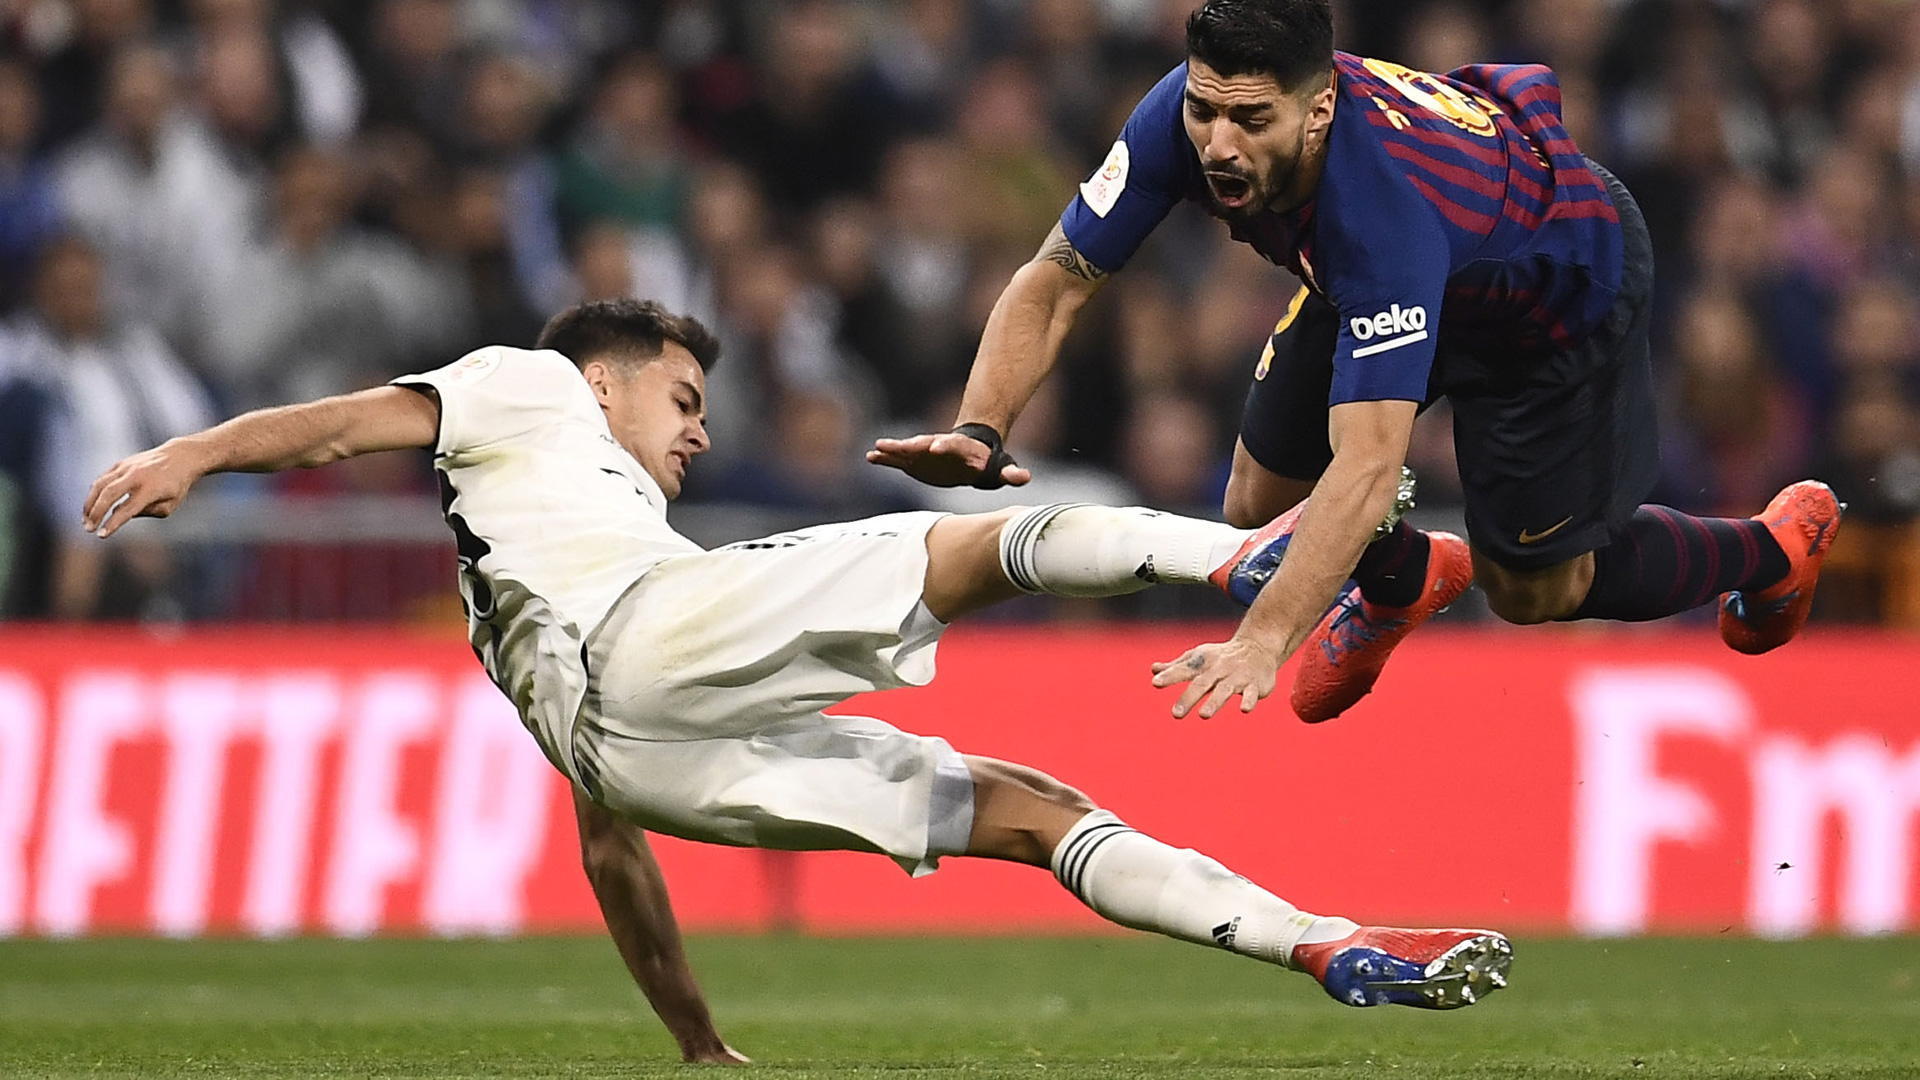 Sergio Reguilon Real Madrid Luis Suarez Barcelona